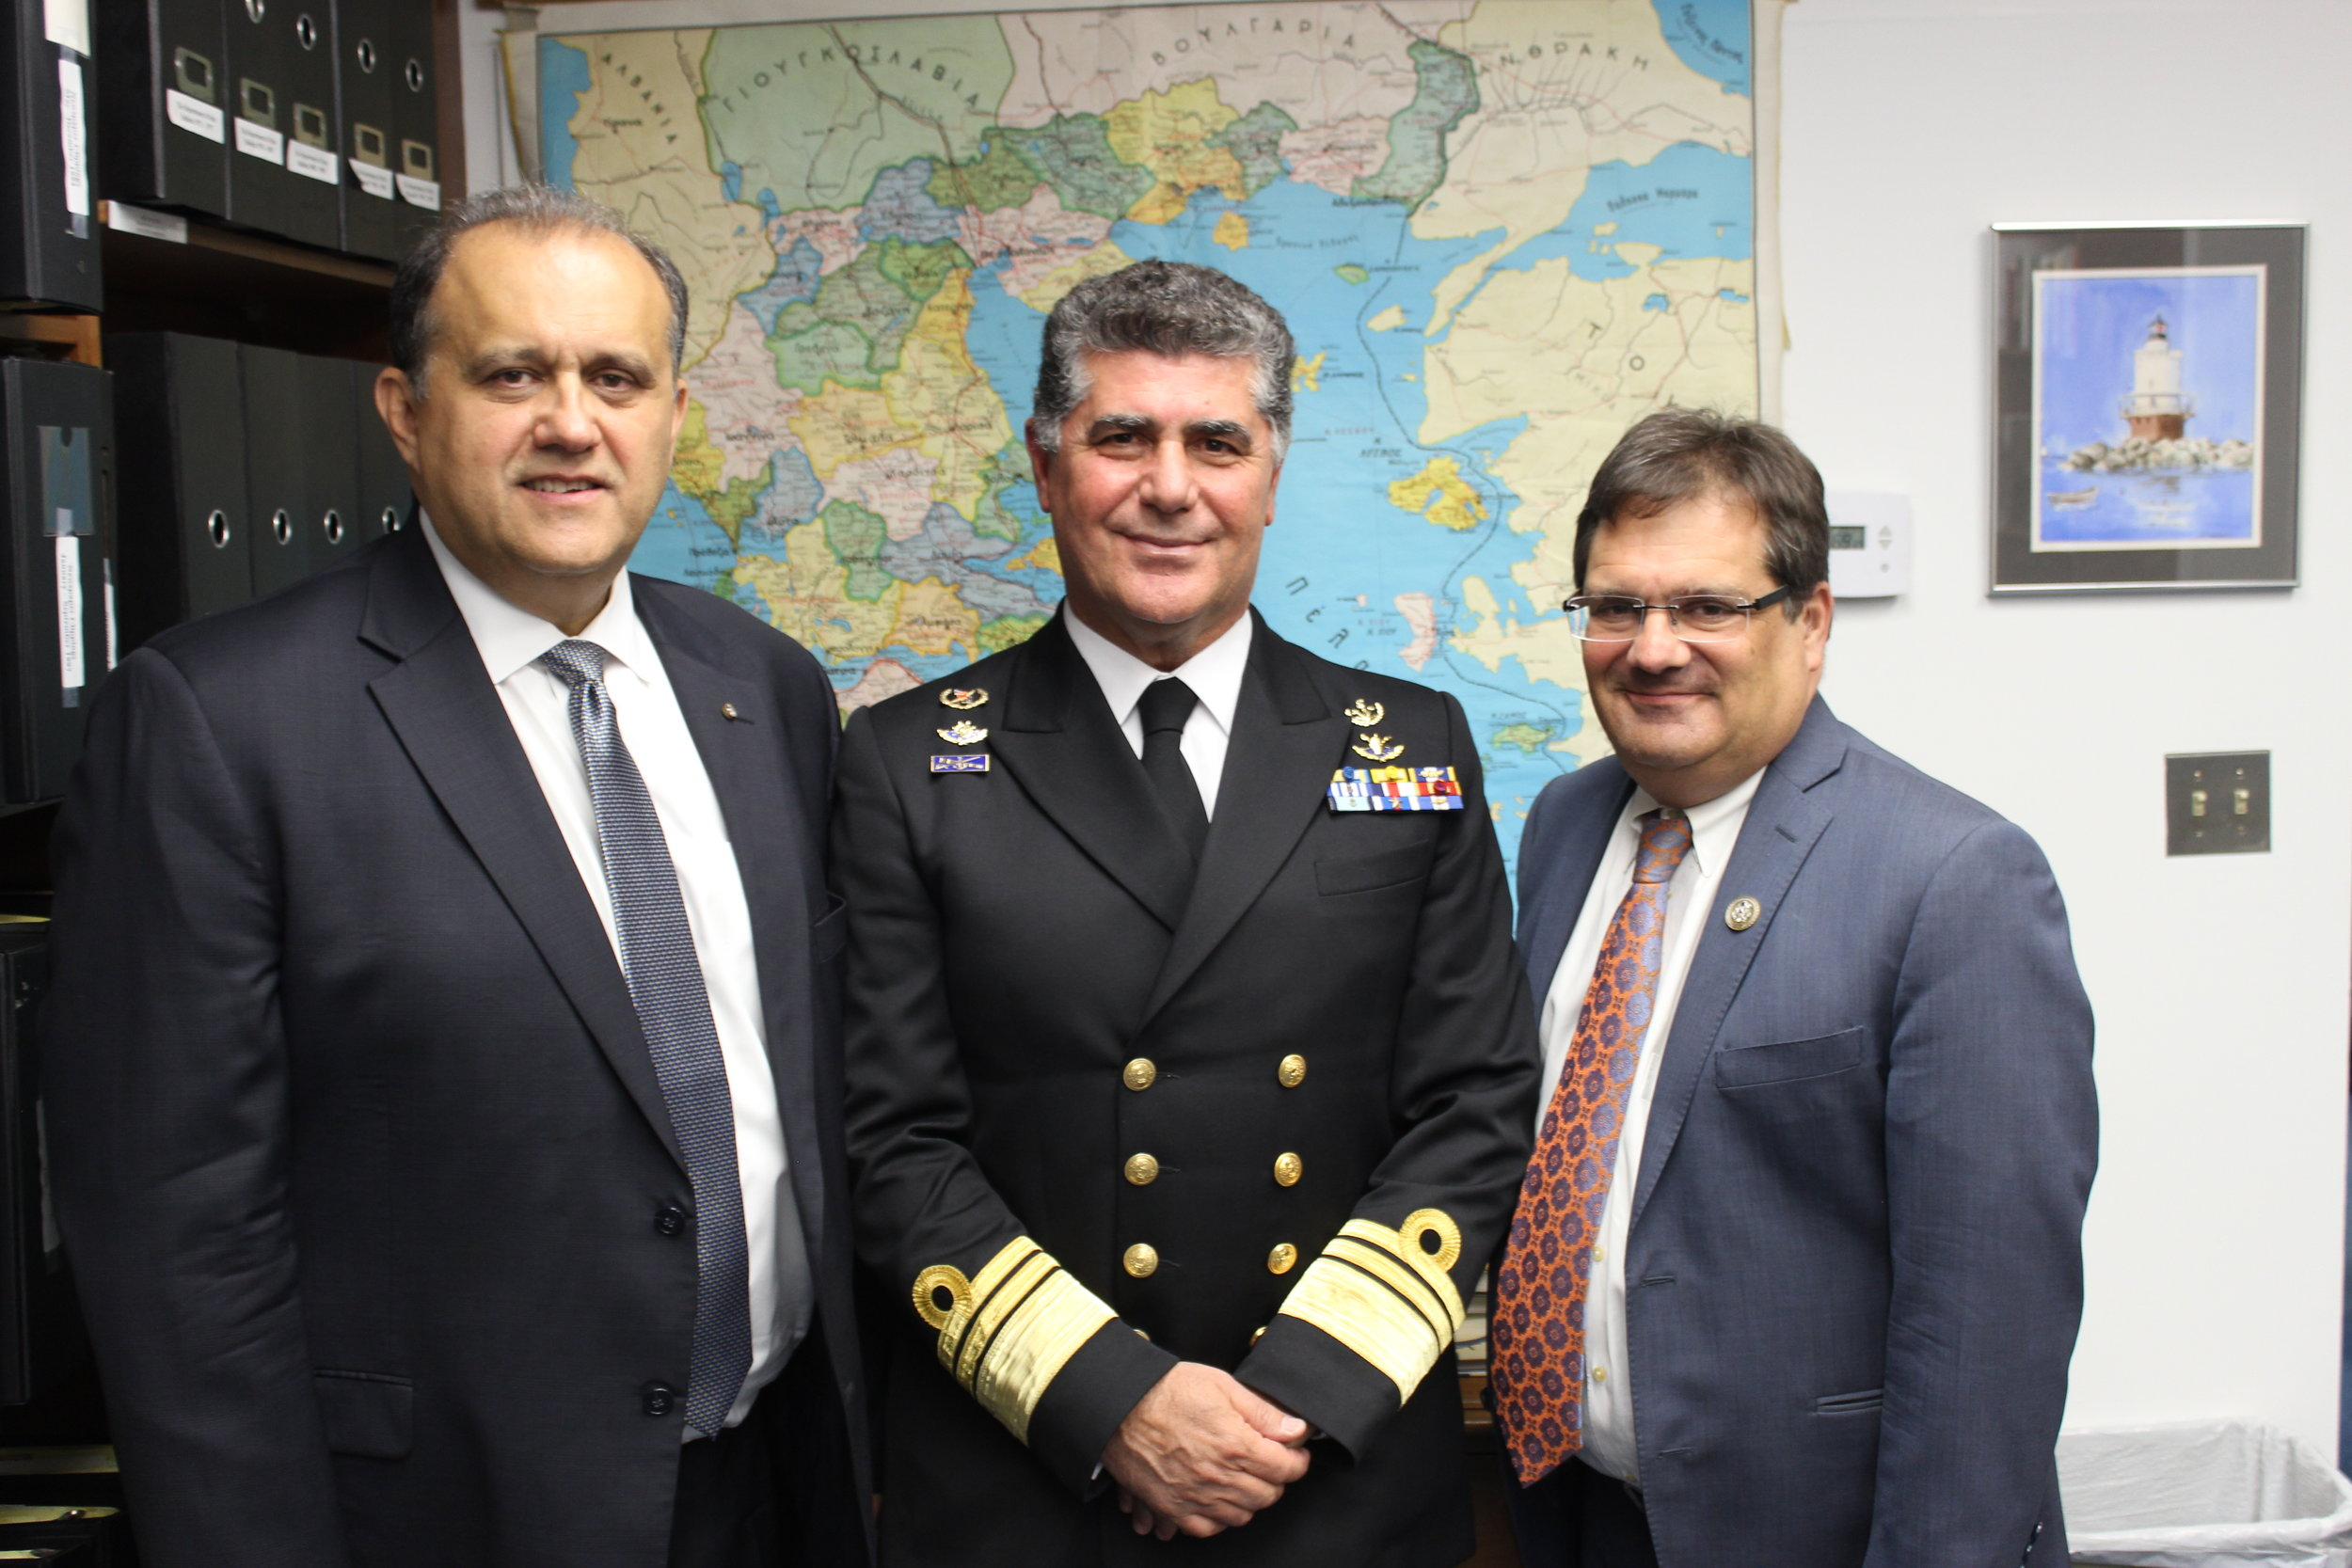 Nick Larigakis, Vice Admiral Tsounis, and Co-Chair of the Hellenic Caucus, U.S. Congressman Gus Bilirakis (FL-12).